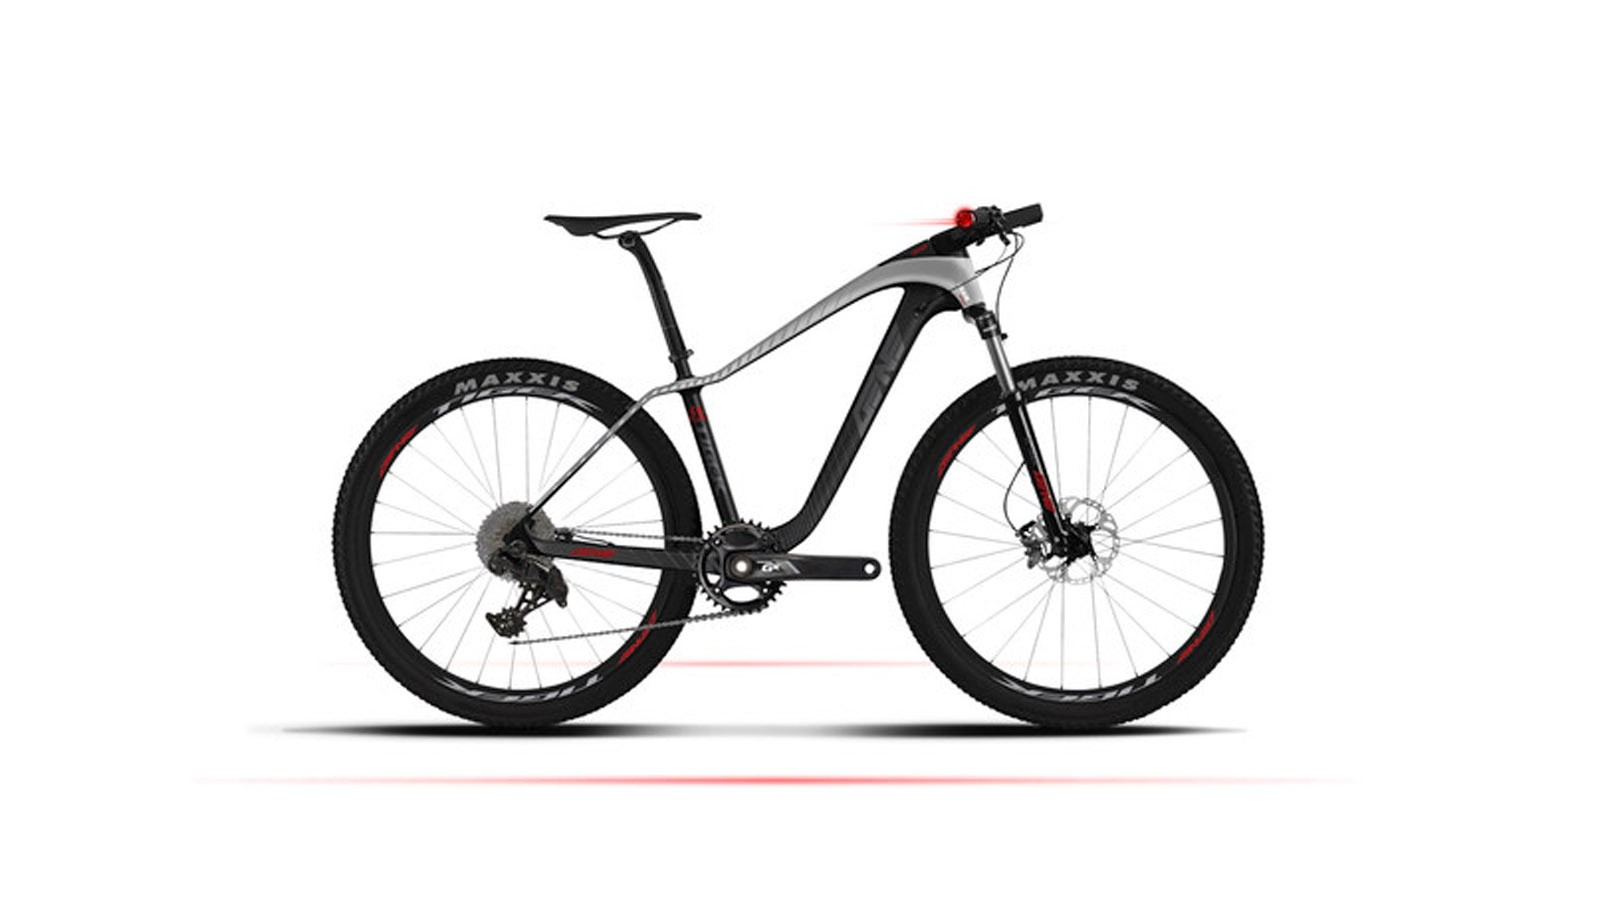 The Smart Mountain Bike is a carbon hardtail with an air sprung fork, hydraulic disc brakes and 1x11 gearing